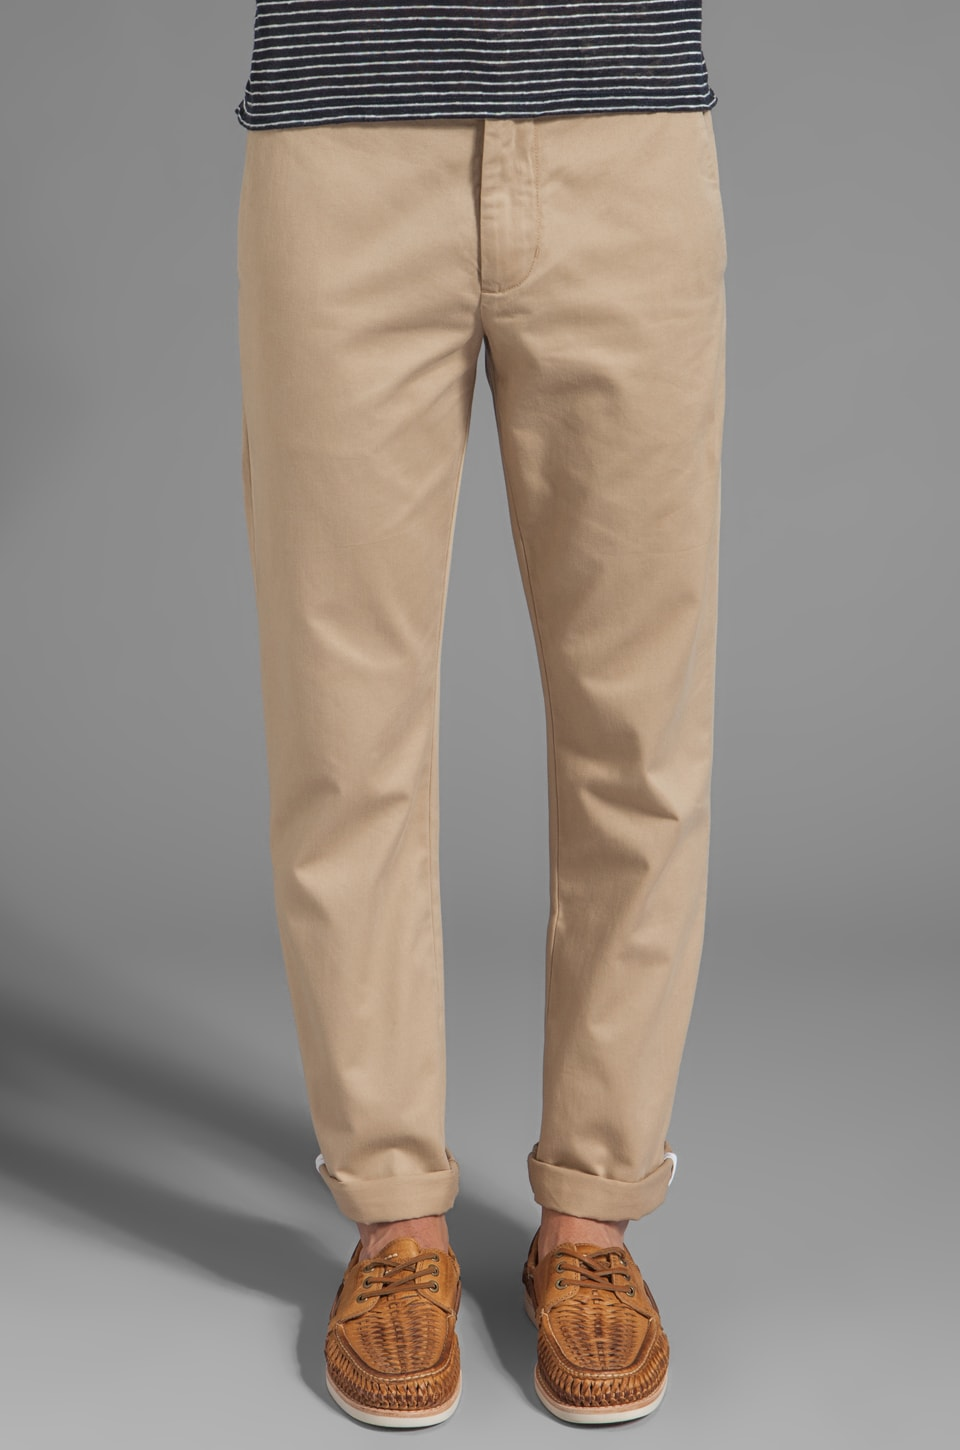 life/after/denim Slim Fit Chino in Khaki